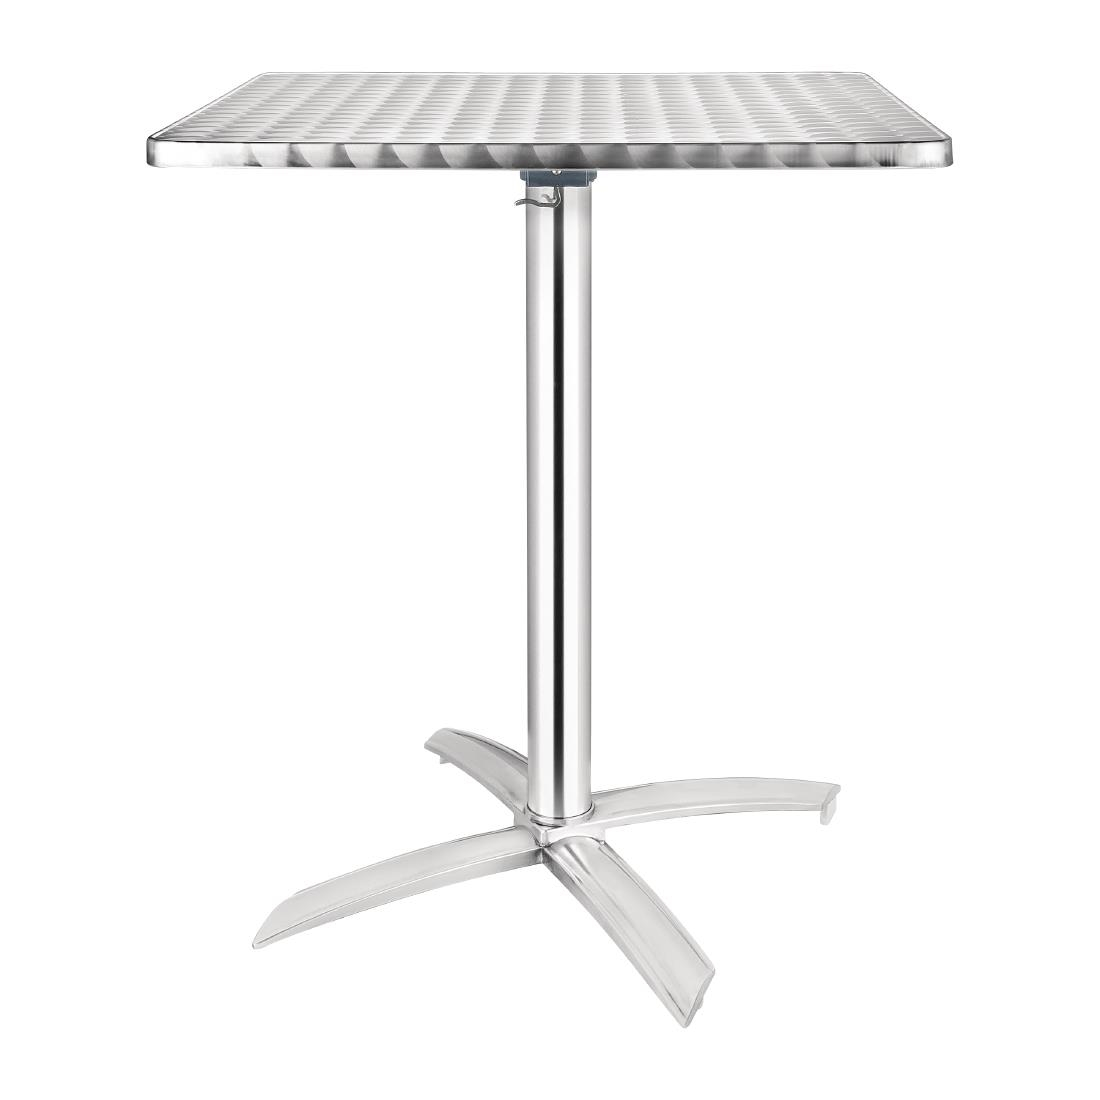 Stainless Steel Flip Top Table CG83 - Square